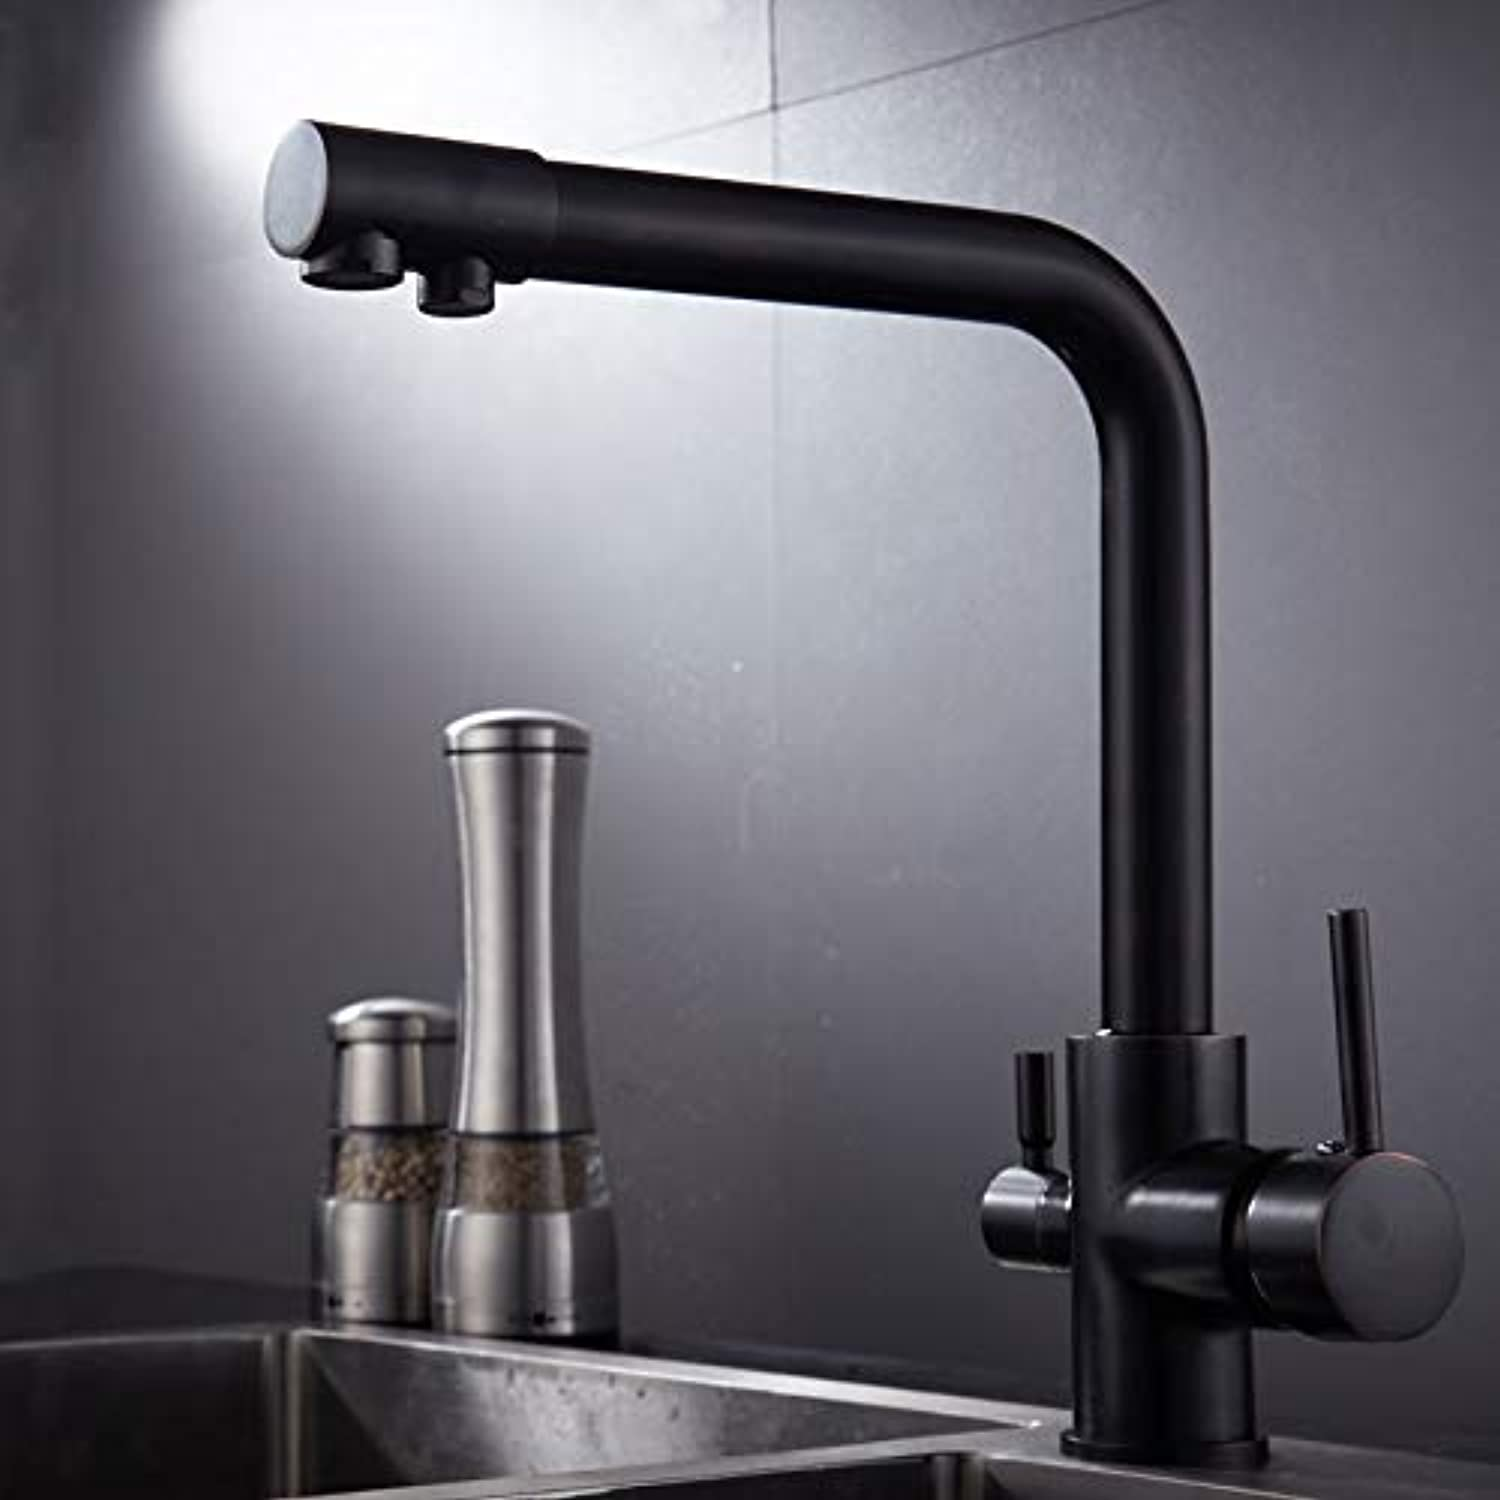 redOOY Faucet Taps Household Three-In-One Copper Kitchen Pure Water Straight Drink Faucet Sink Sink Hot And Cold Water, Round Body Black